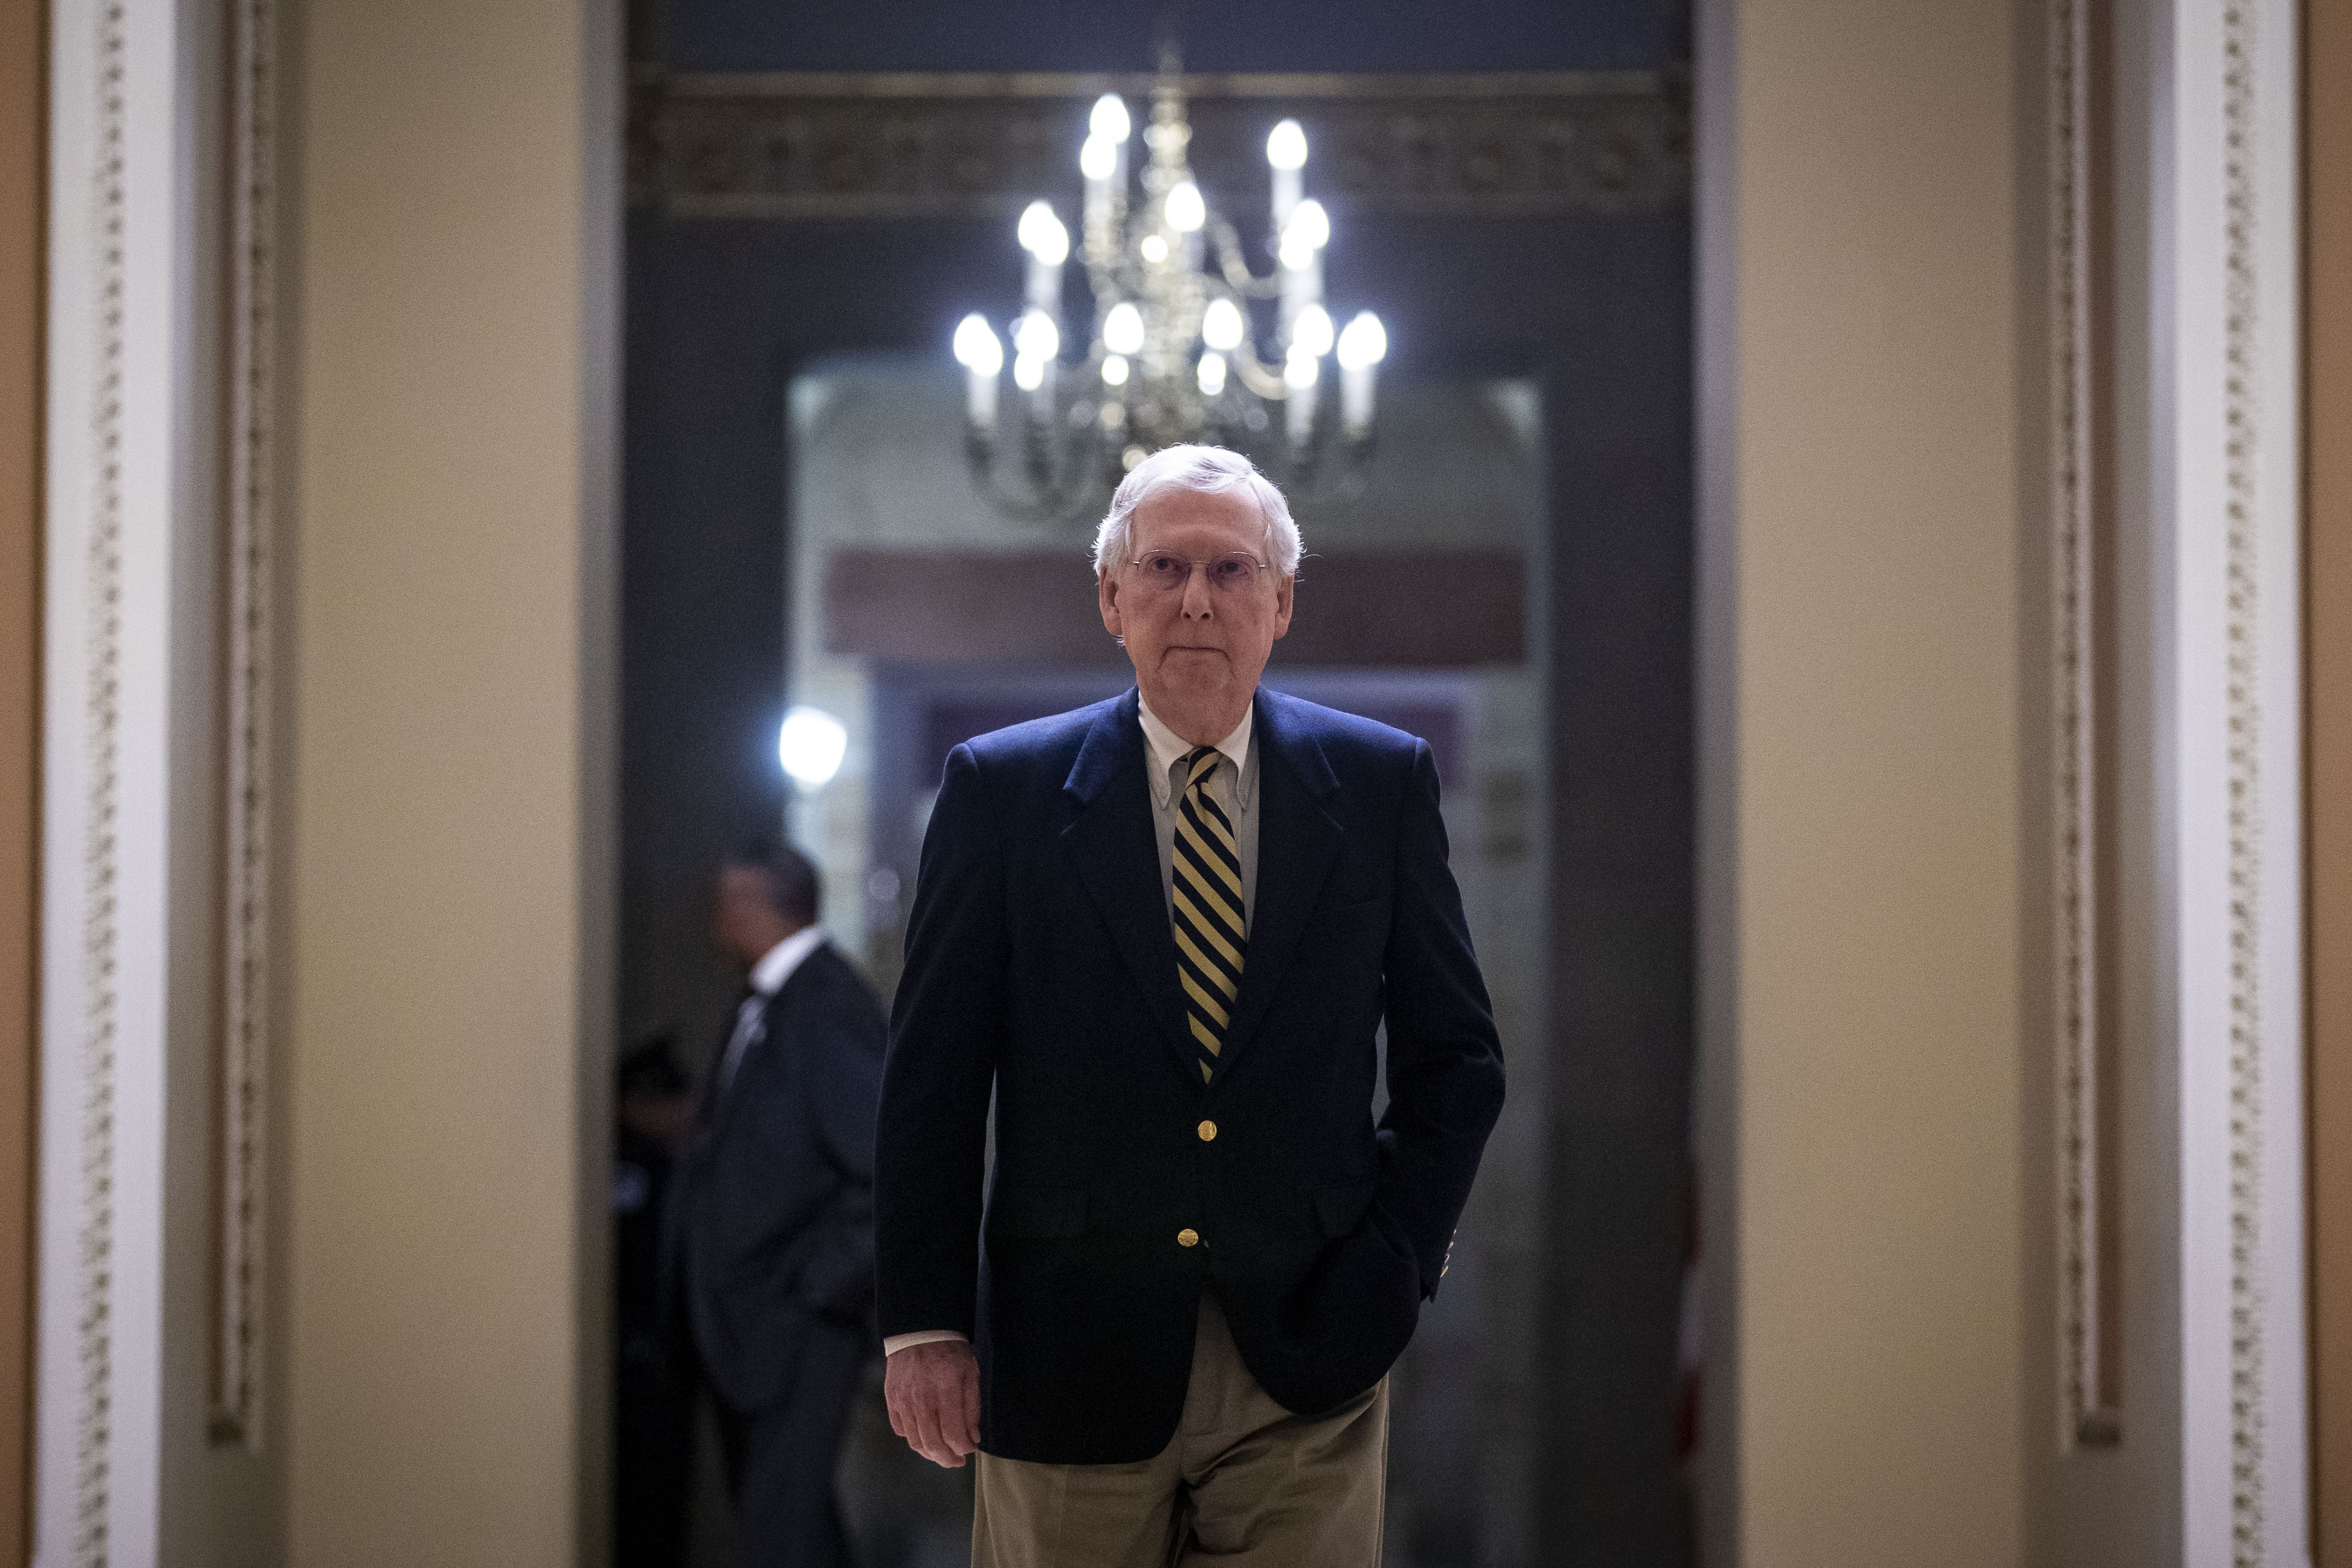 It was the divisive step that Senator Mitch McConnell and most other Republicans in the Senate had forcefully urged Trump not to take because it would establish a precedent they feared future Democratic Presidents would use against them.